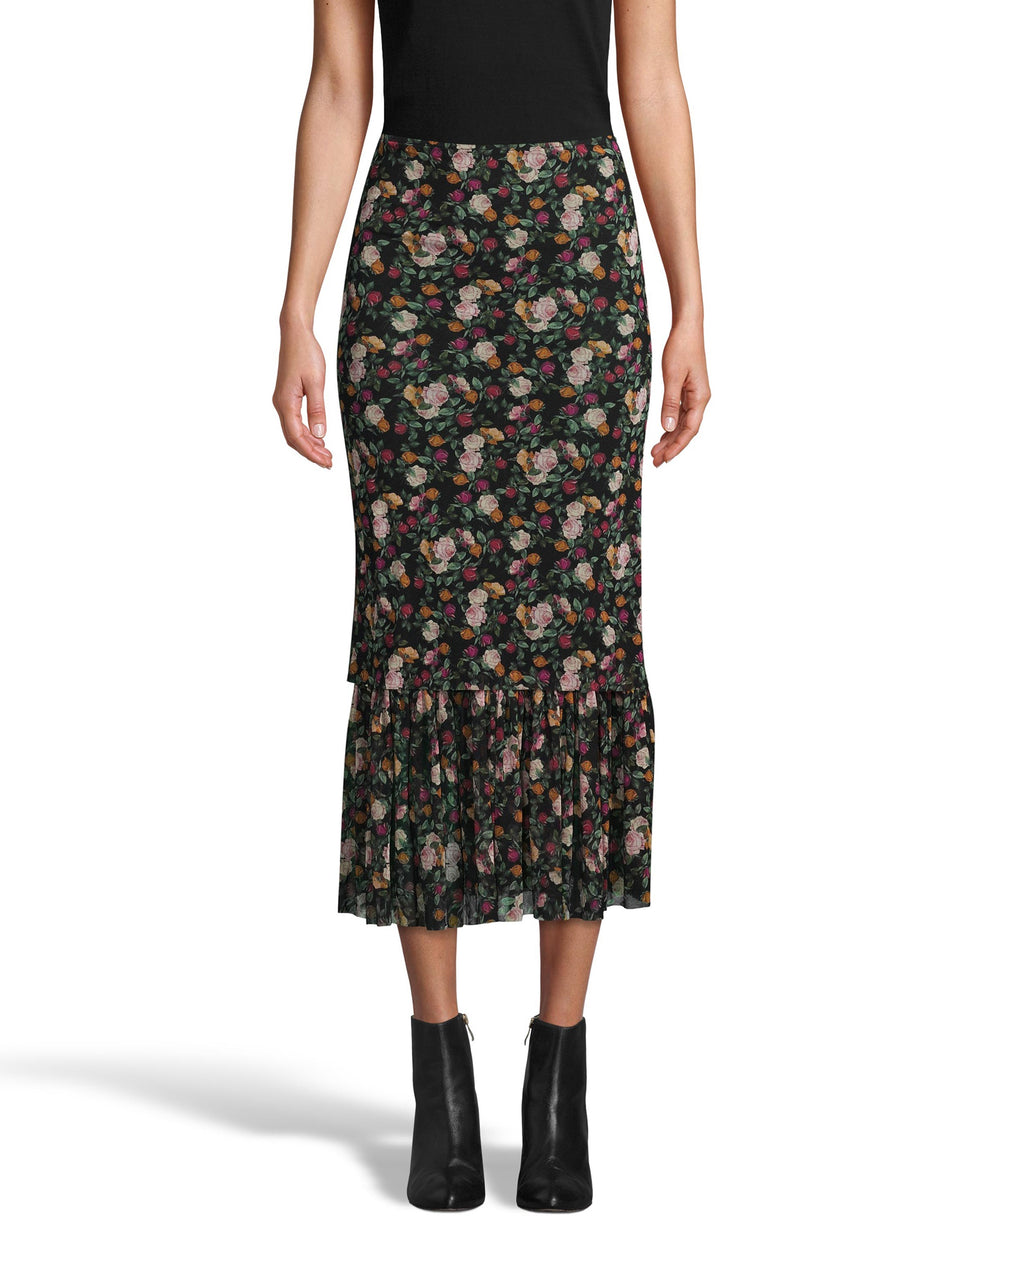 CS18198 - PRINTED MESH MIDI SKIRT - bottoms - skirts - This easy, pull on midi skirt is multilayered with rose printed mesh and features a tiered ruffle hem. This fall favorite style perfectly transitions from warmer to cooler fall days. Add 1 line break Stylist tip: Style with white sneakers and a chunky oversized sweater.